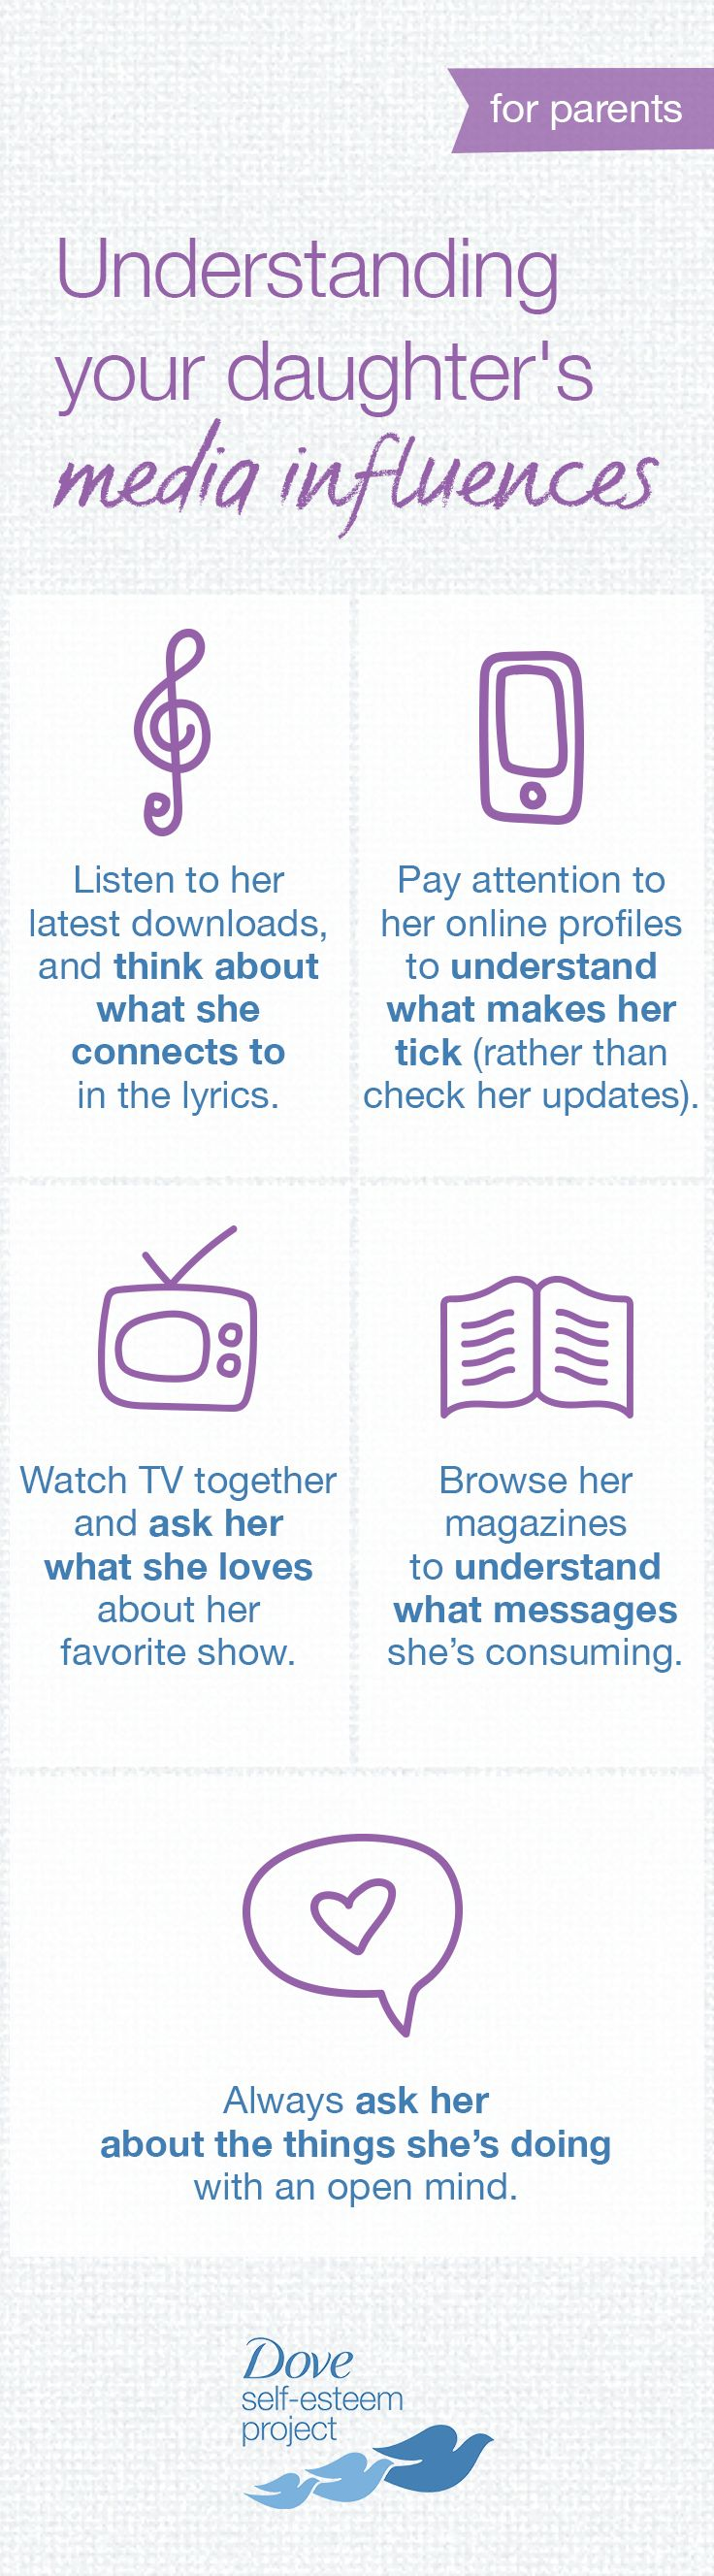 What influences a teenager today might be different from what influenced you as a girl. Rather than dismissing her world, try to embrace and understand it—after all, imagine your parents' confusion around your own teenage world. Here are pointers to help learn more about your daughter's realities and keep an open line of communication. For more info—head to www.pinterest.com/selfesteem. #SelfEsteemProject